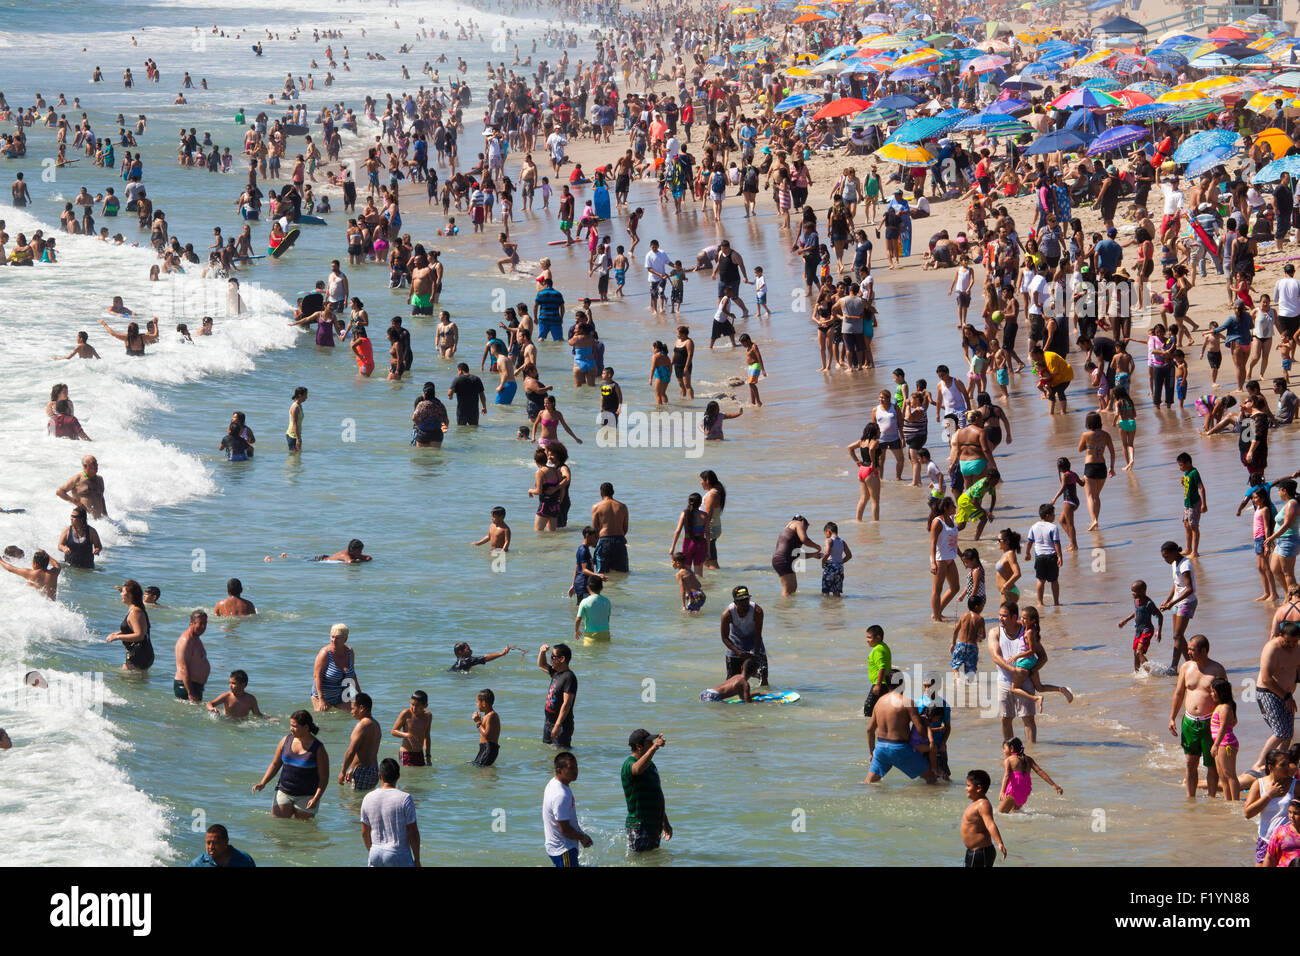 View from the Santa Monica Pier, a crowded, hot Labor Day - Monday September 7, 2015 - Santa Monica, Los Angeles - Stock Image